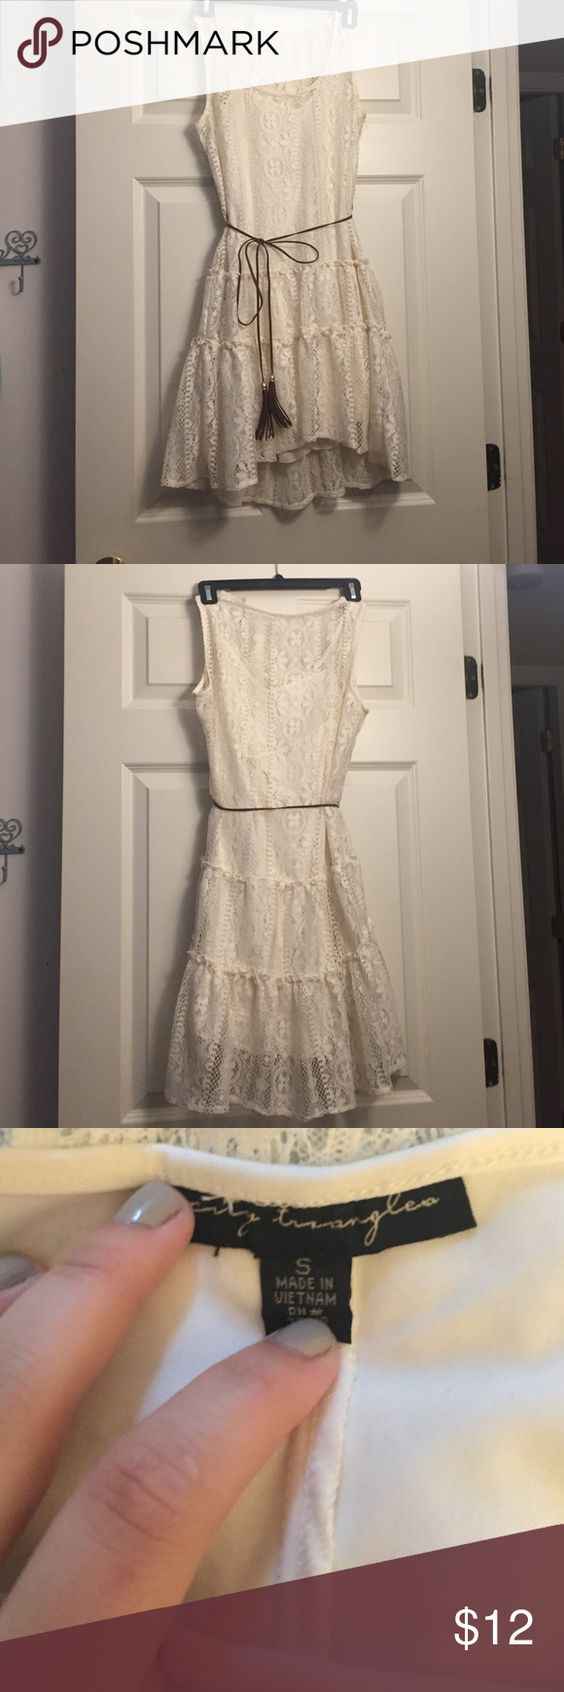 🌸White Lace Dress🌸 🔃Open to trading🔃 ❗️20% off bundles❗️ 💸Prices are negotiable, just ask!💸 Dresses Midi